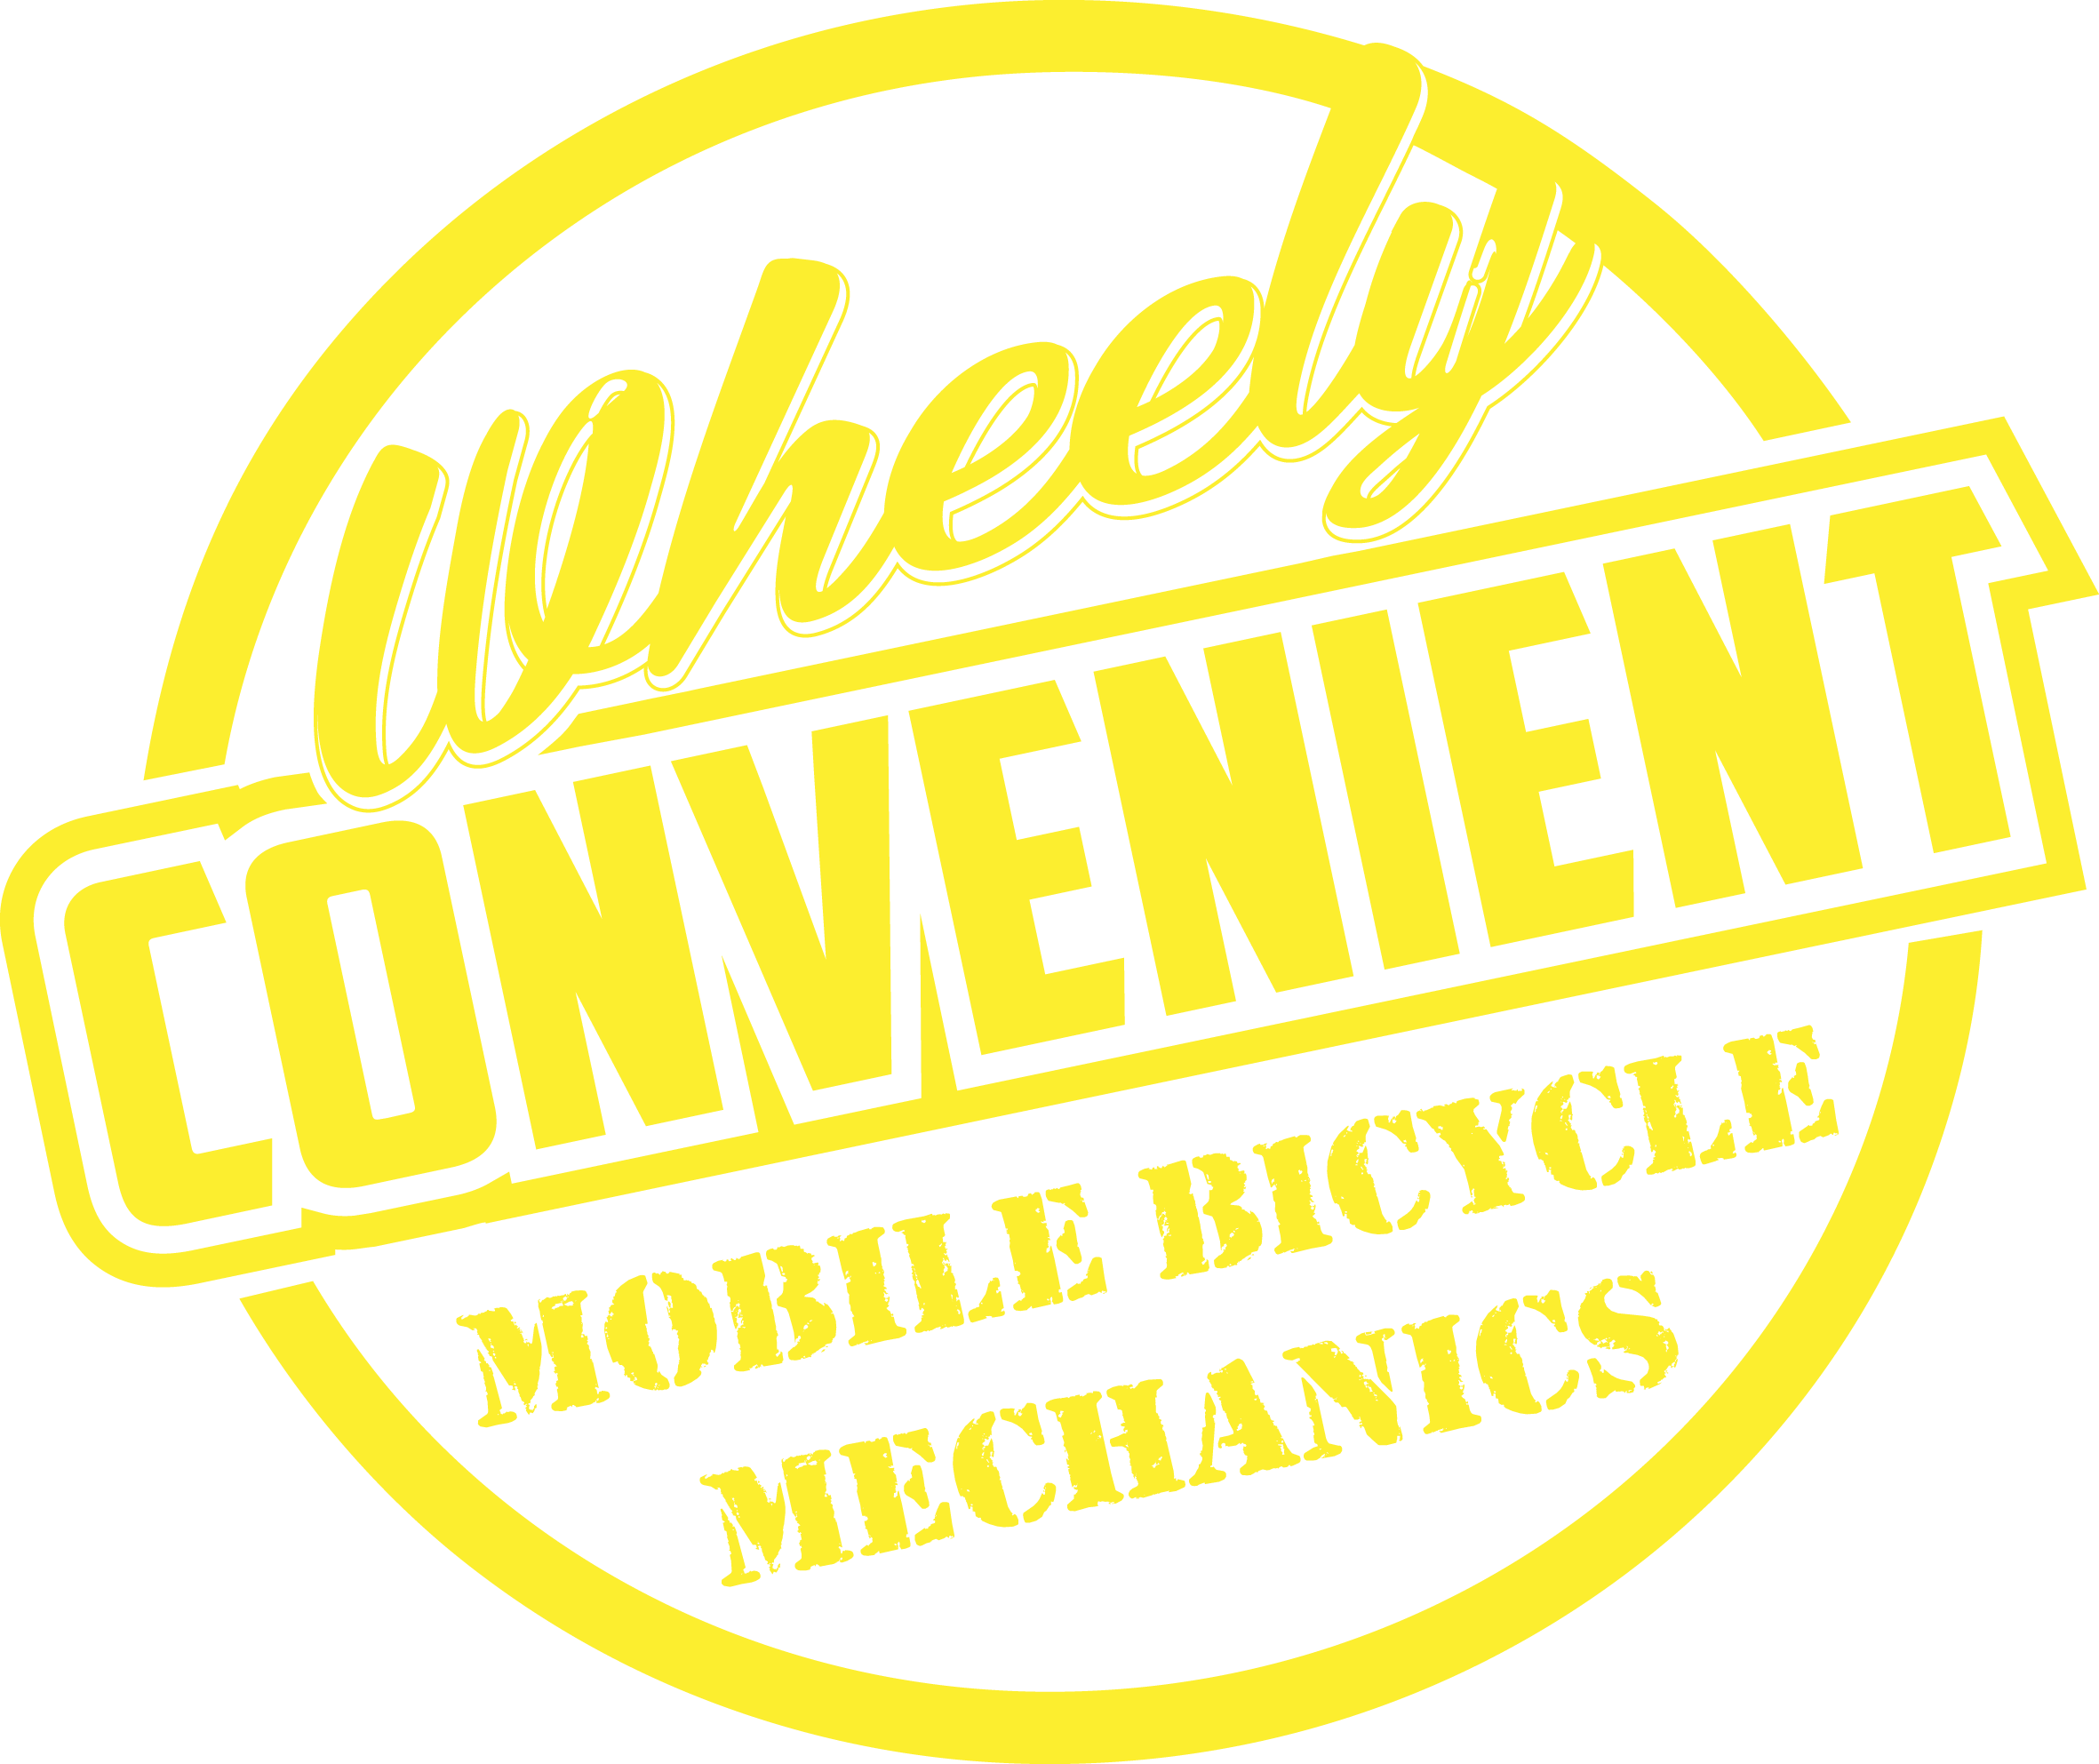 Wheely Convenient Mobile Bicycle Mechanics